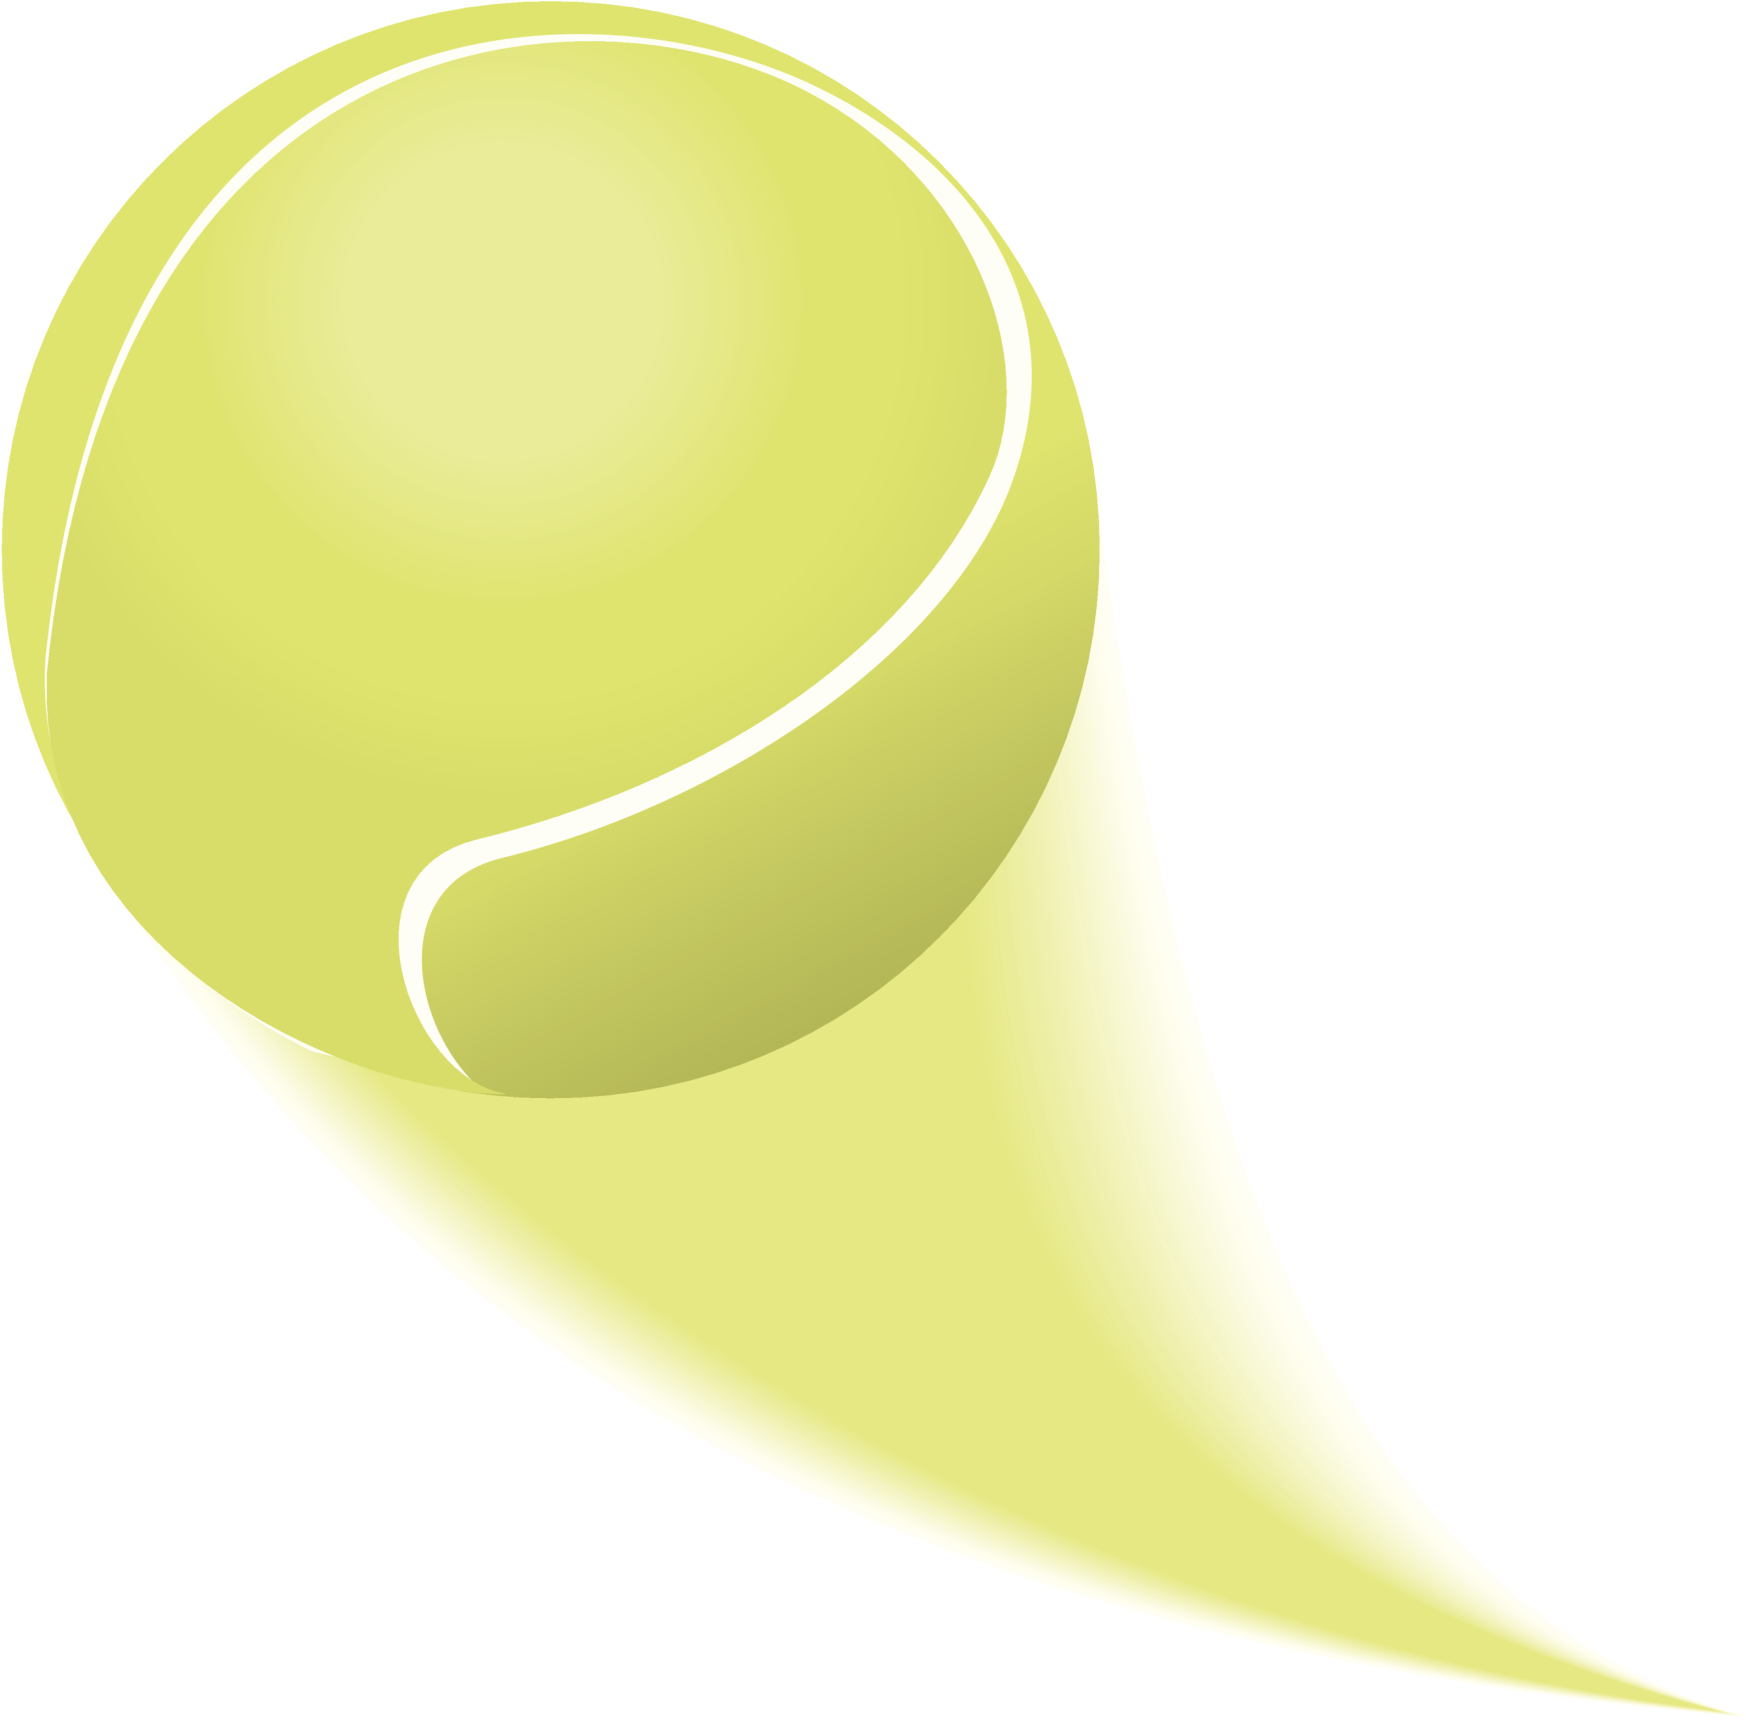 Pictures Of Bouncing Tennis Ball Clipart Www Kidskunst Info